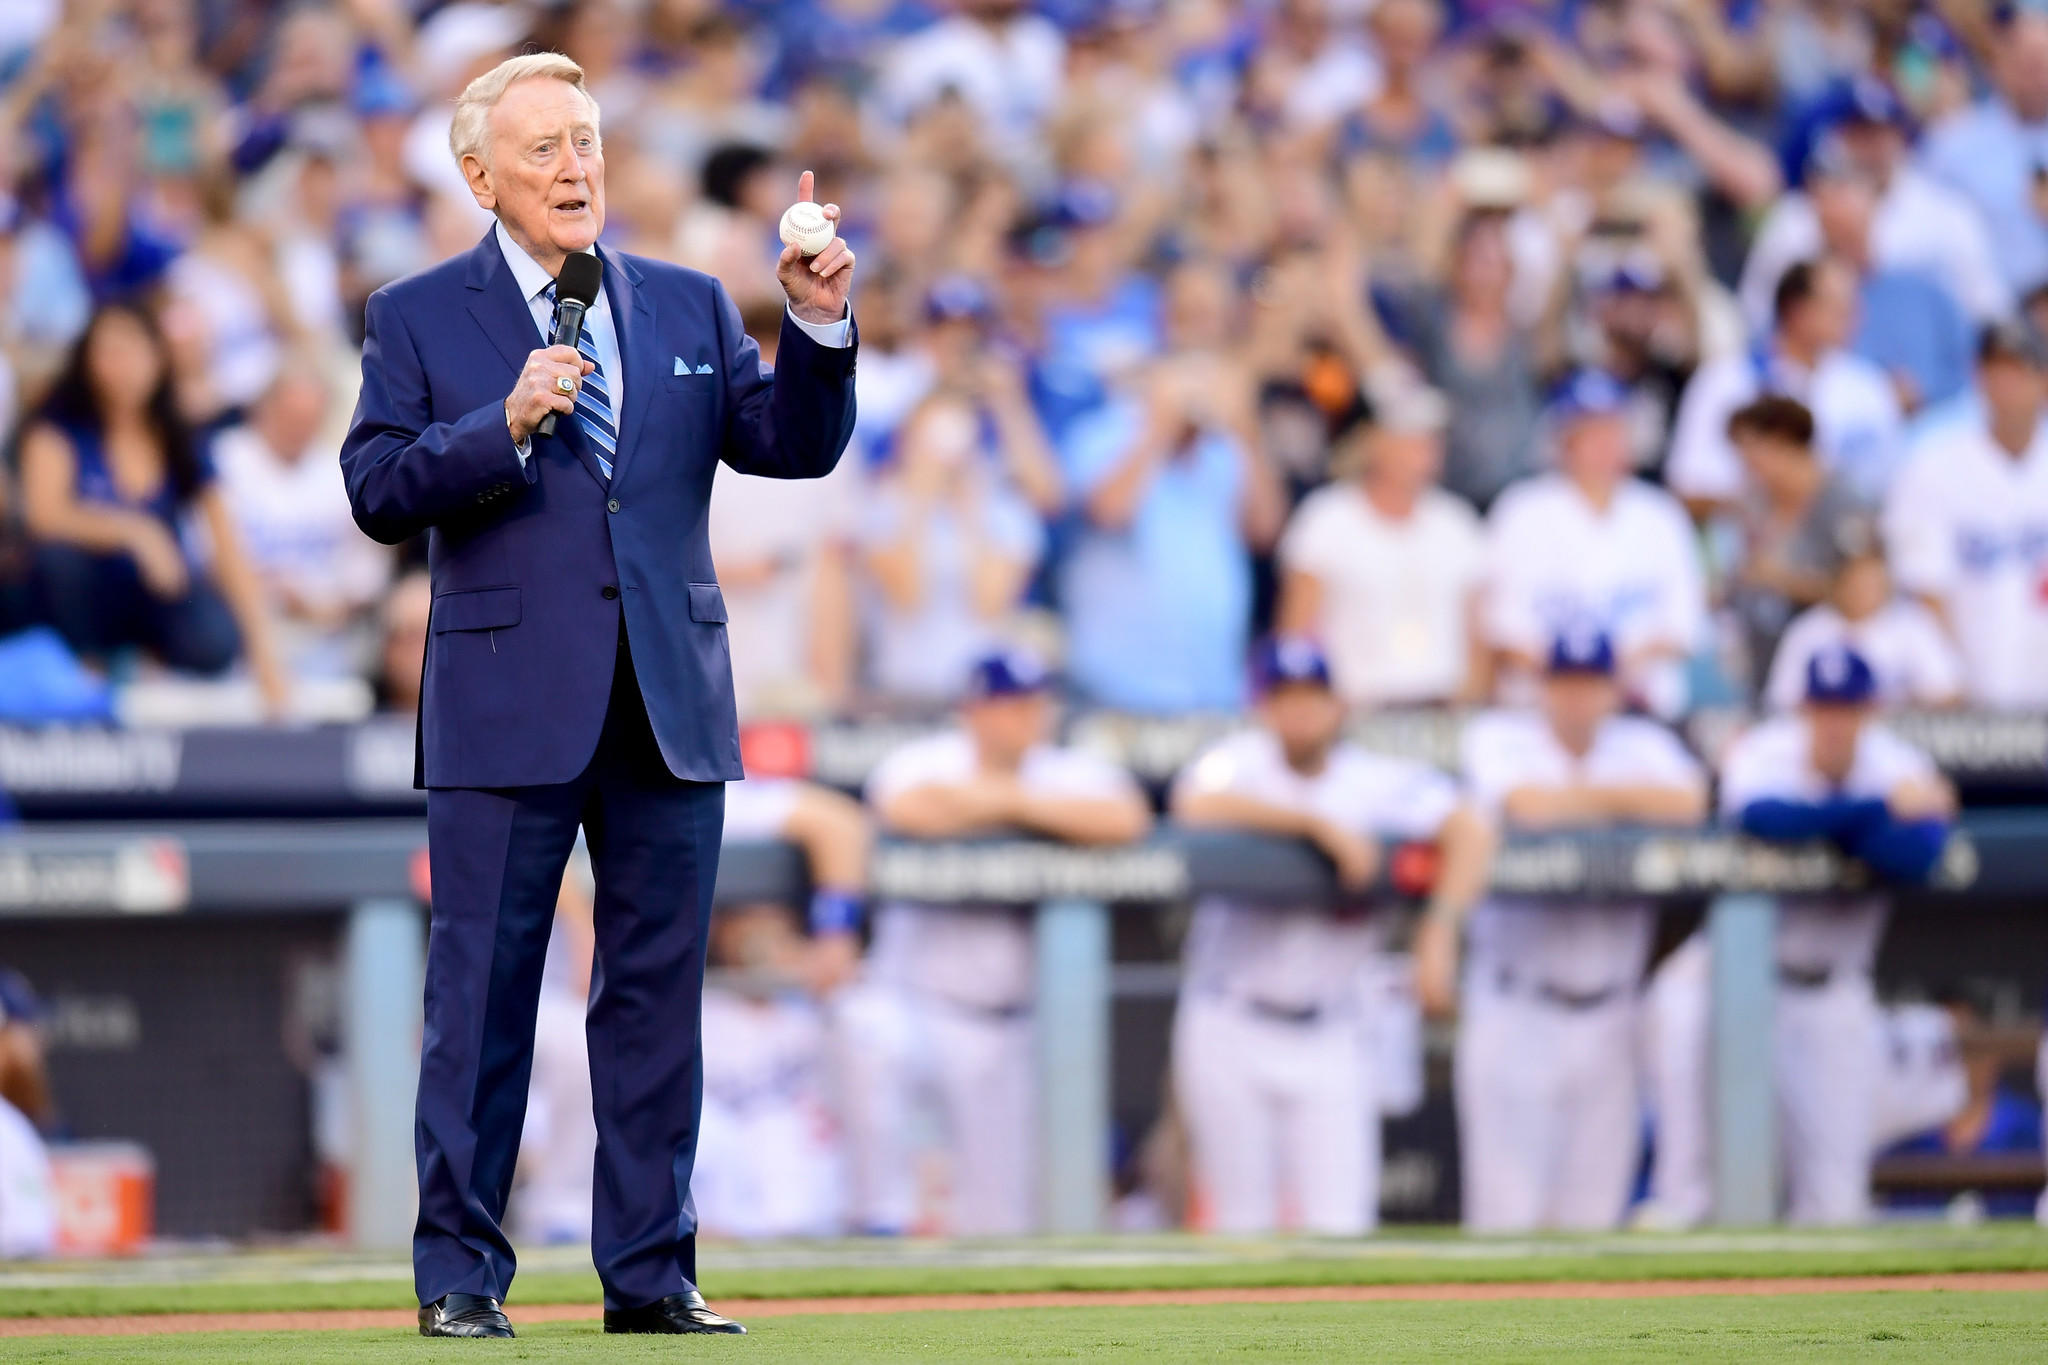 Vin Scully throws out first pitch ahead of Game 2